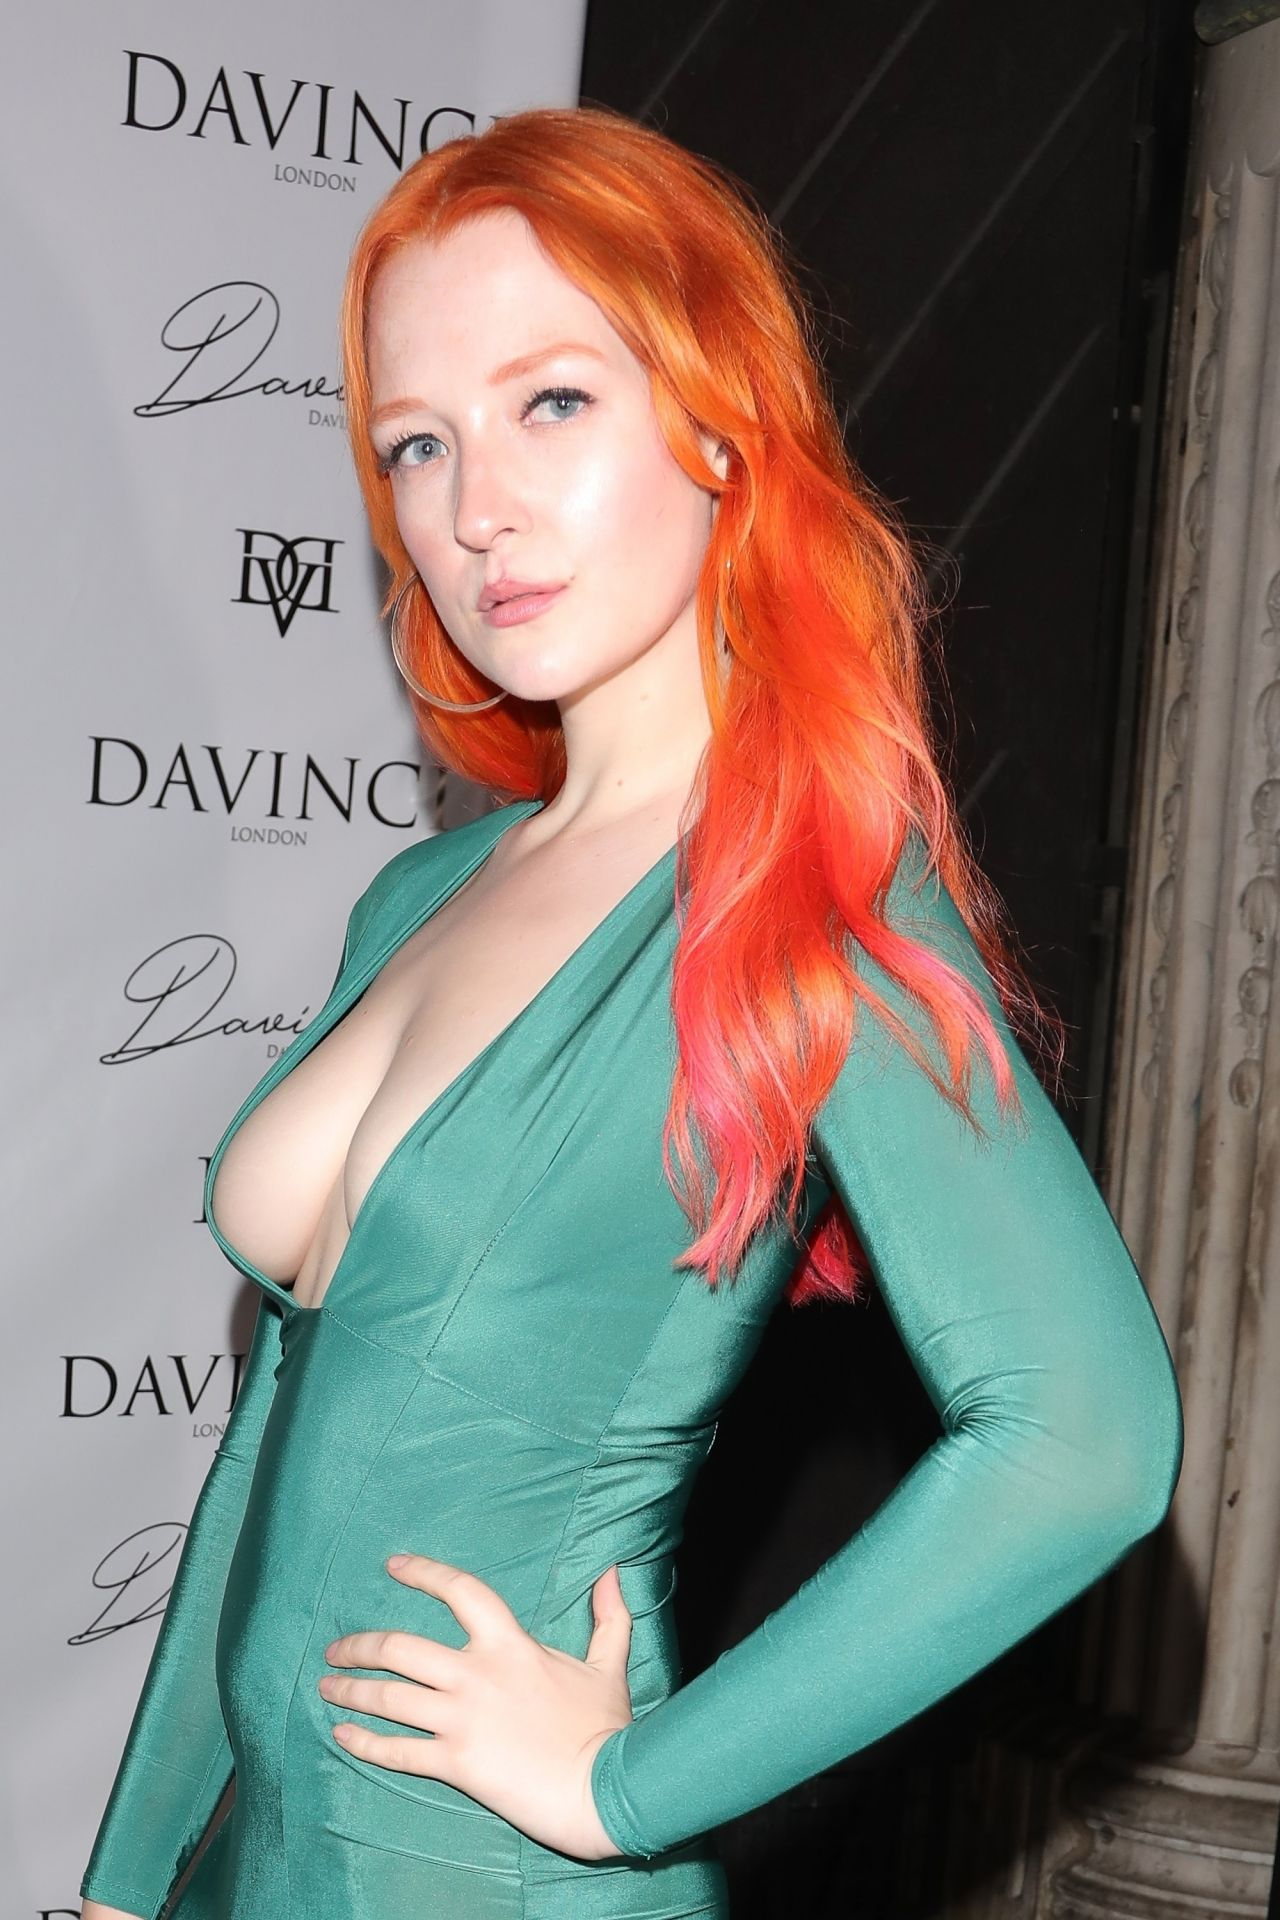 Victoria Clay Davinci London Collection Launch Party 05